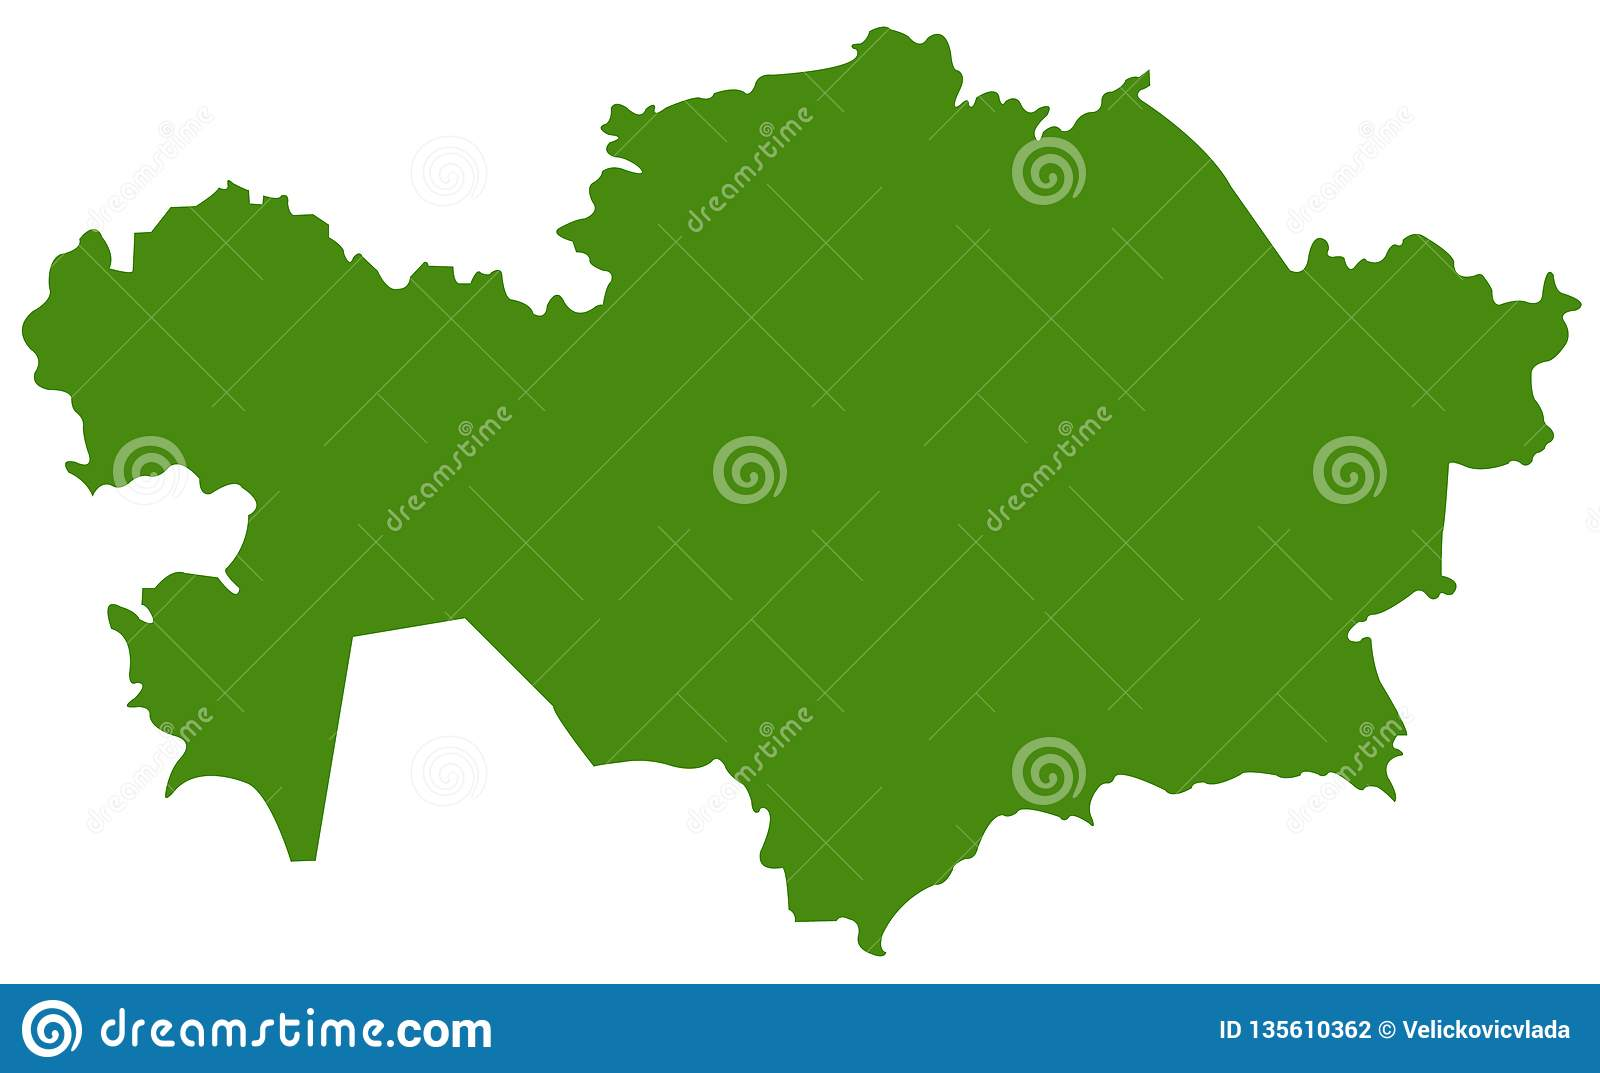 Picture of: Kazakhstan Map Republic Of Kazakhstan Stock Vector Illustration Of Contour Kazakh 135610362